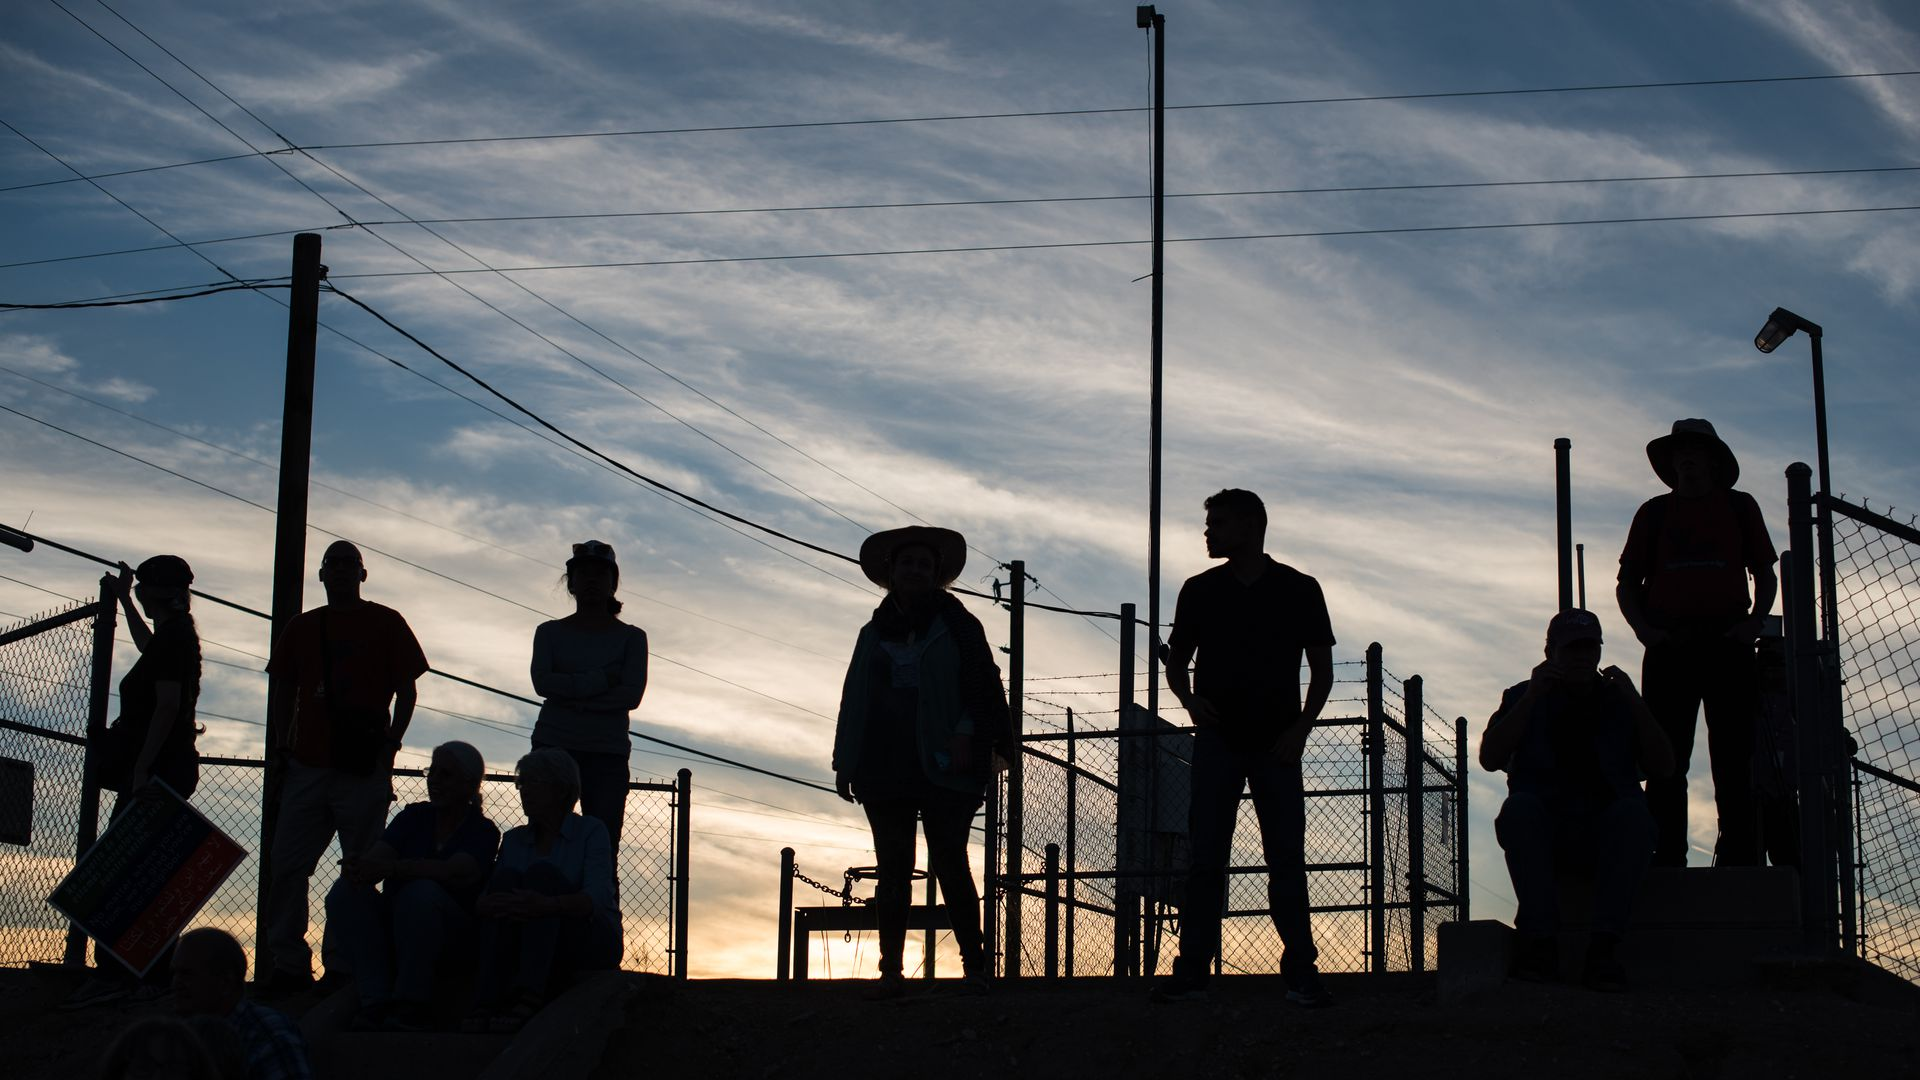 Silouettes of several people standing on a roof with a sunset in the background